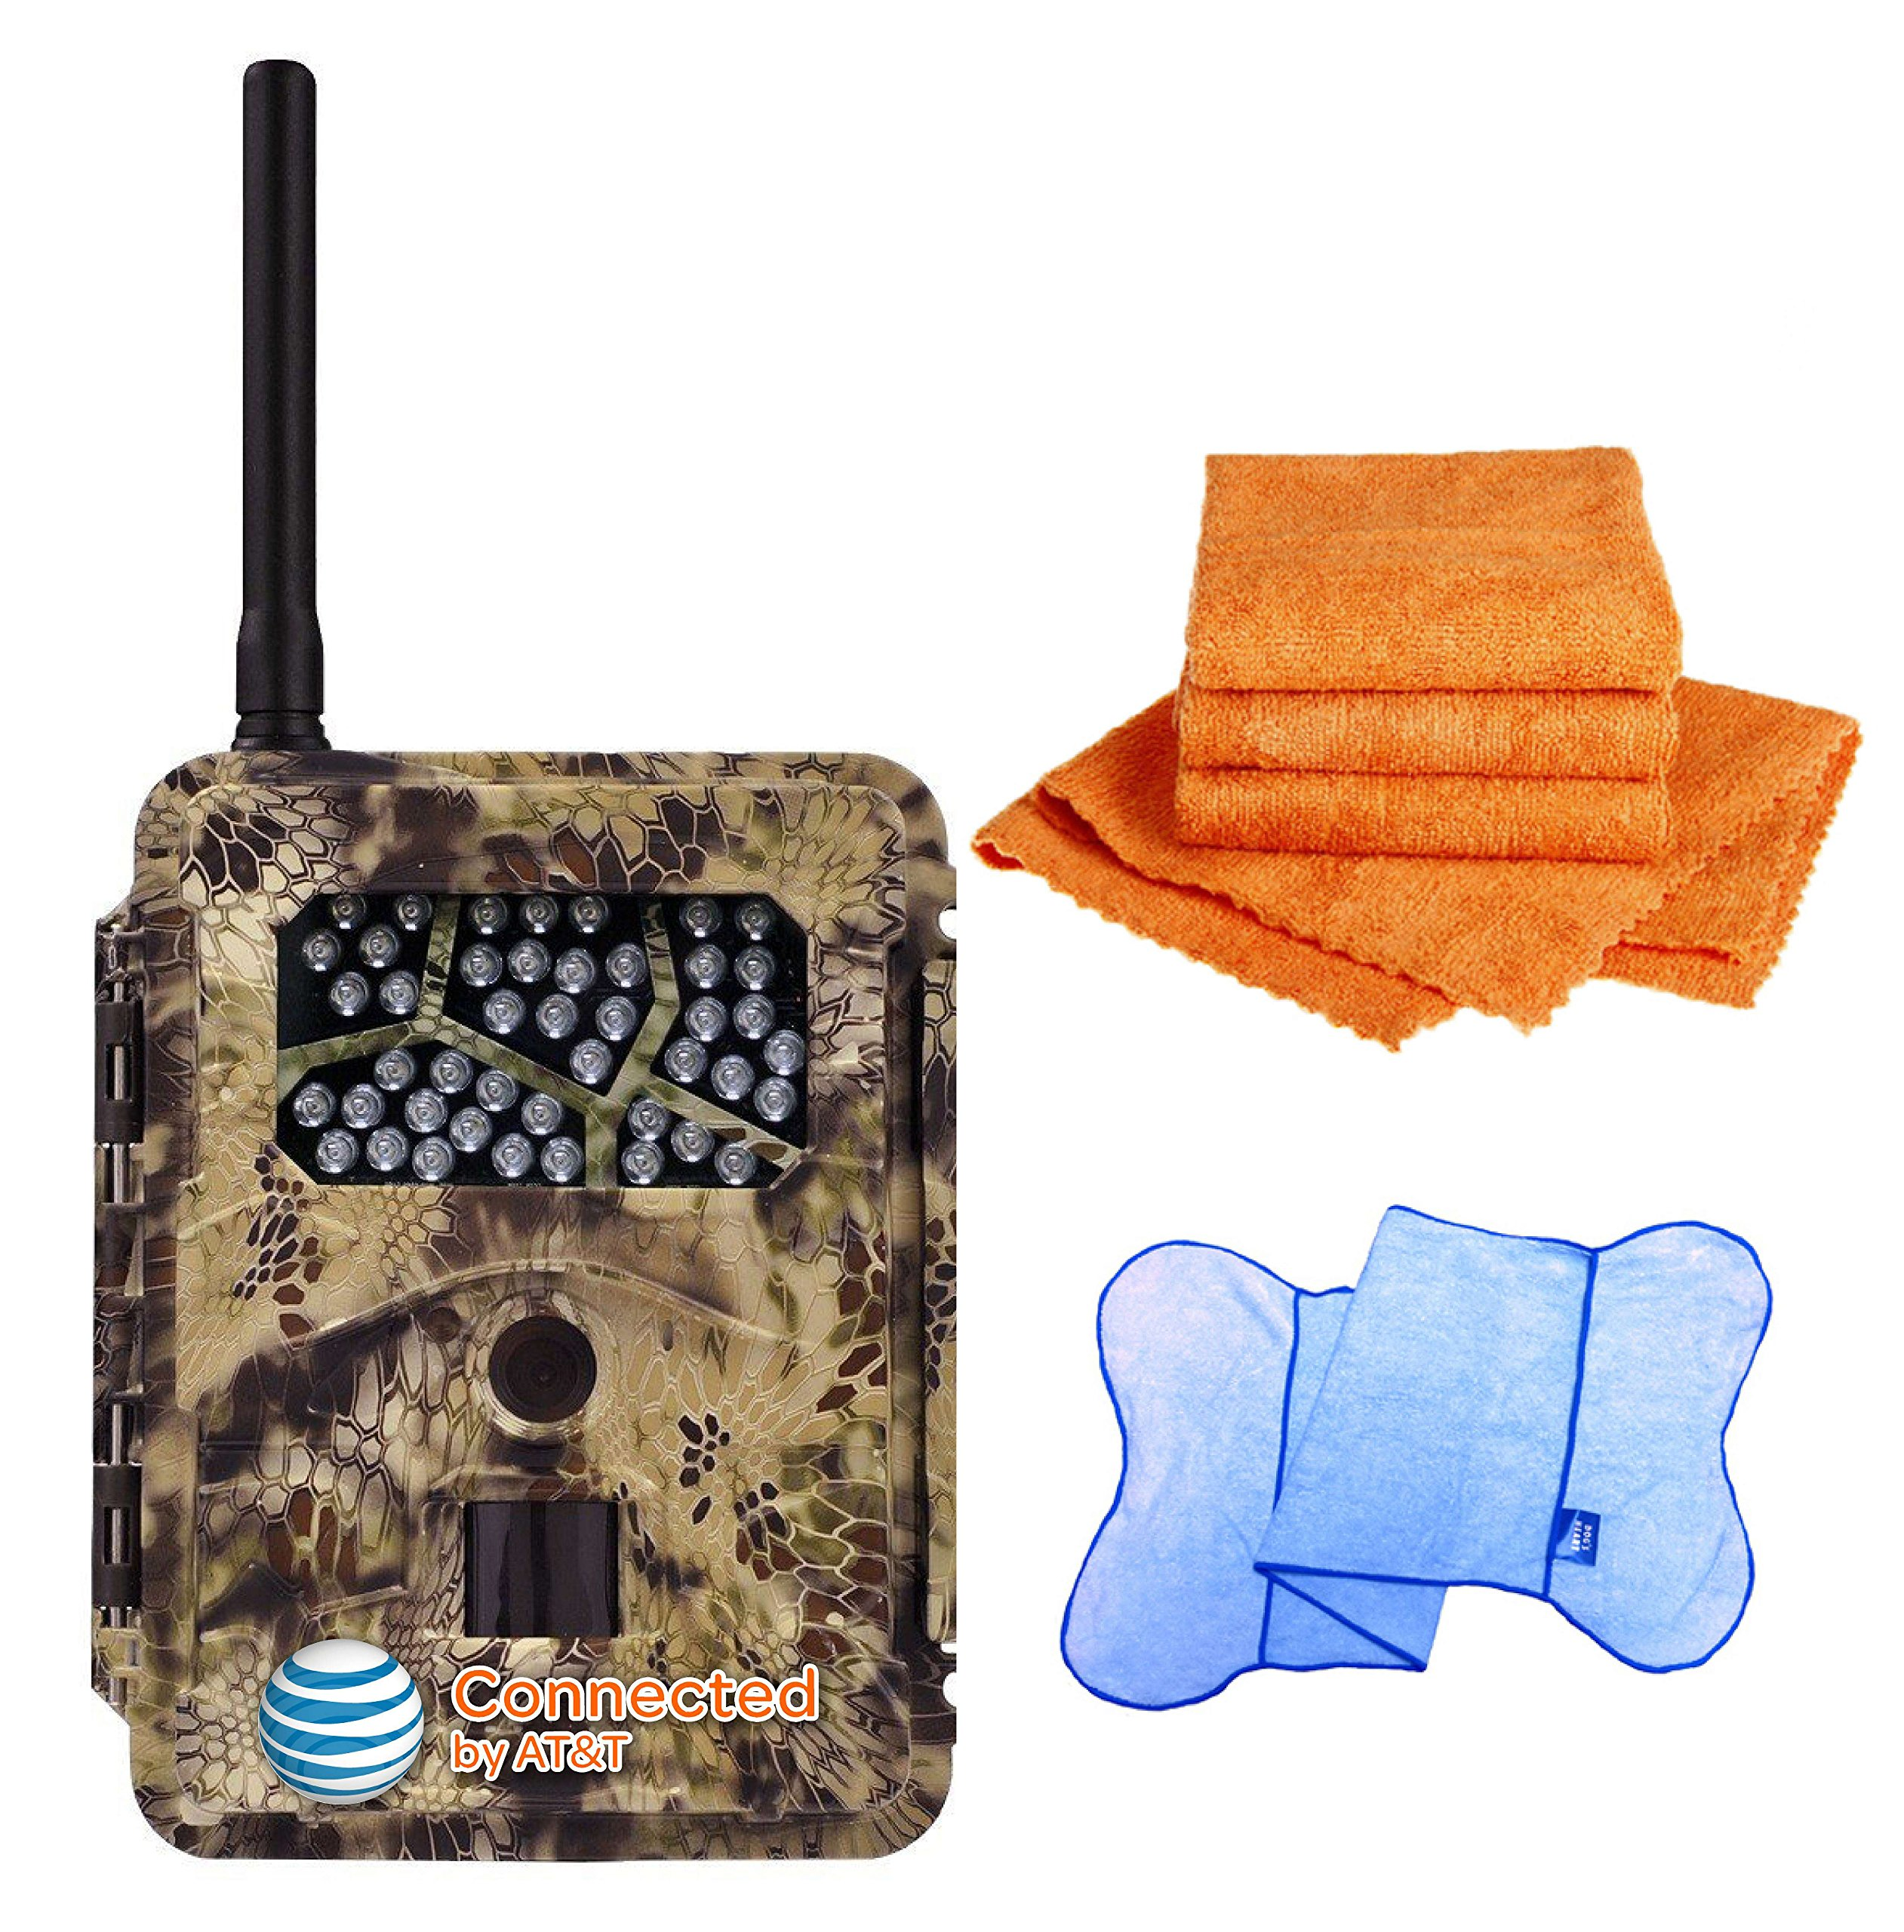 Spartan HD GoCam (AT&T Version, Model#GC-ATTi) 3G Wireless, Infrared (2-year warranty) - Bonus Package Bundled with UTowels Edgeless Microfiber Towels by Spartan (Image #1)